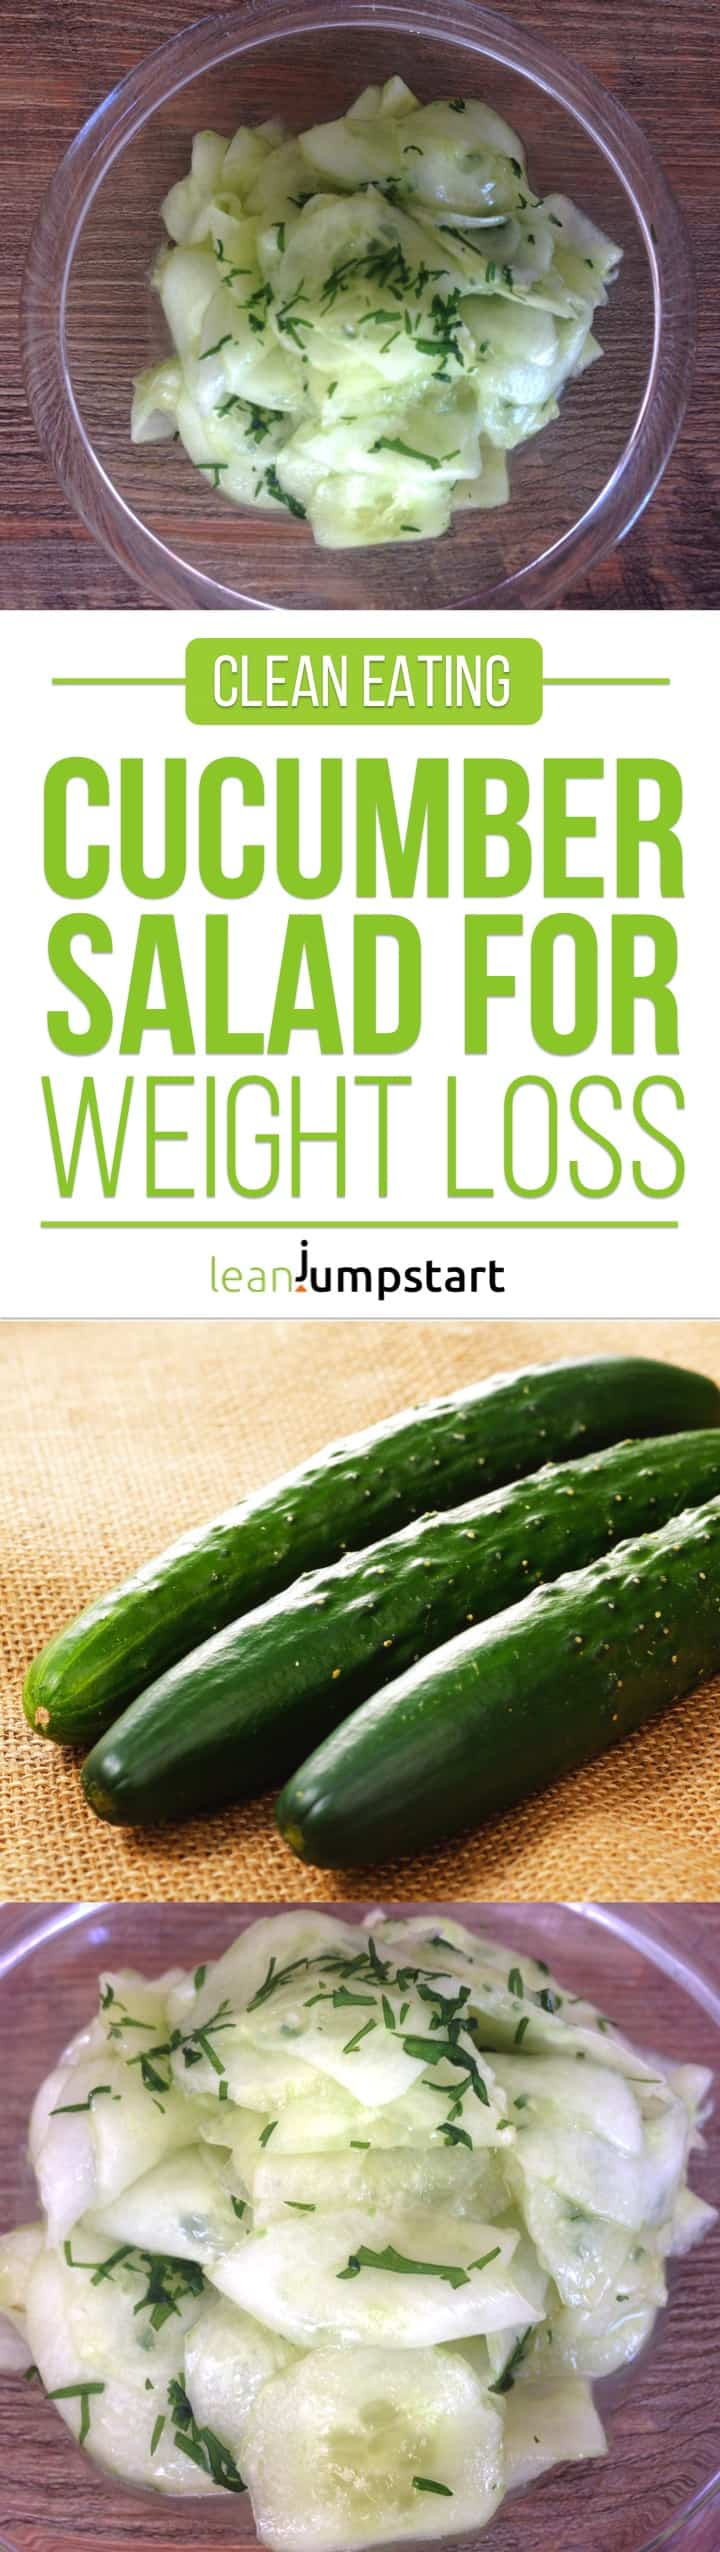 easy cucumber salad: simple and lean clean eating salad with vinegar dressing